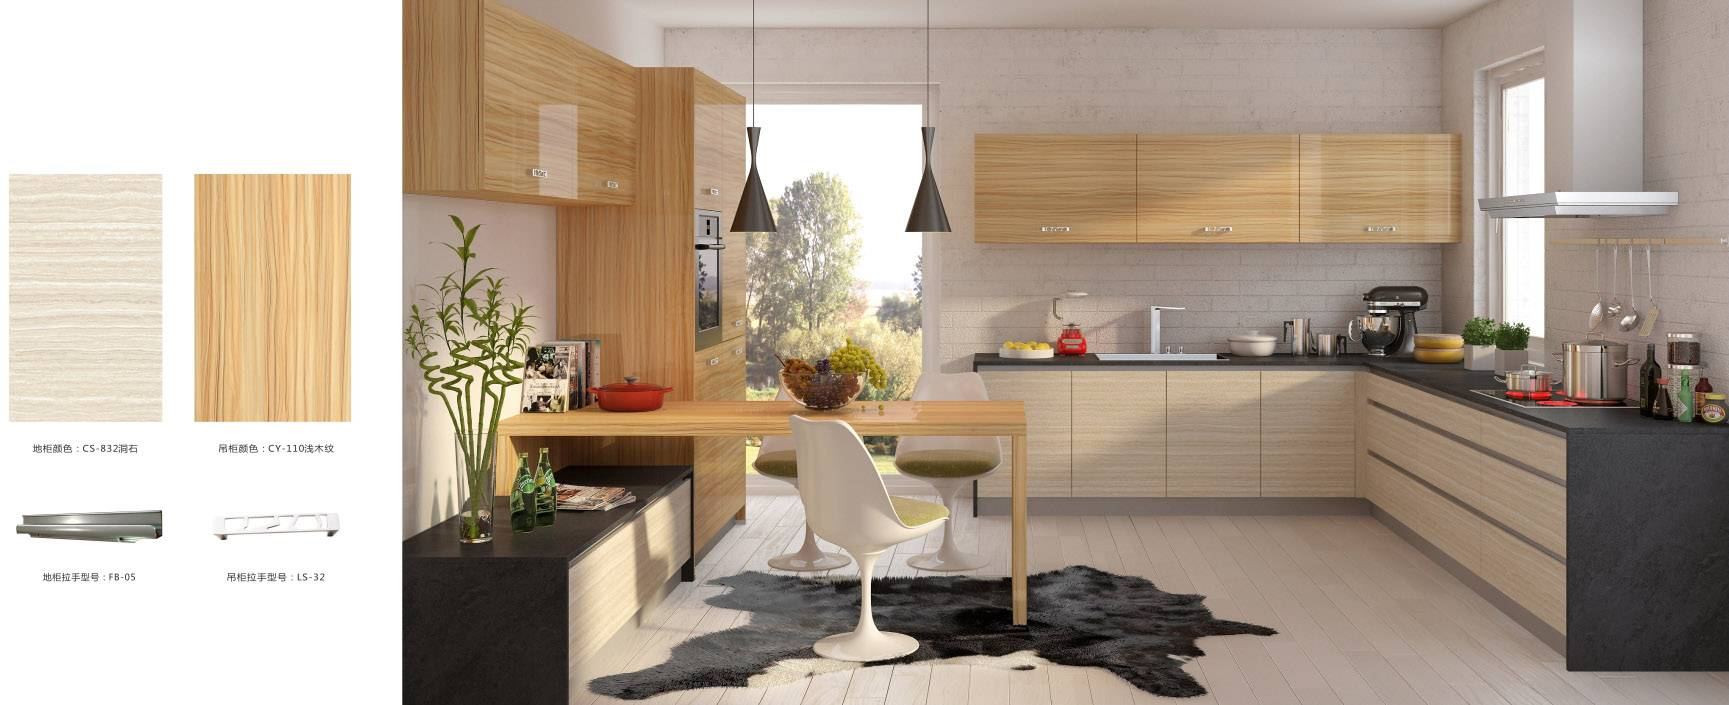 kitchen cabinet,base cabinet,wall cabinet